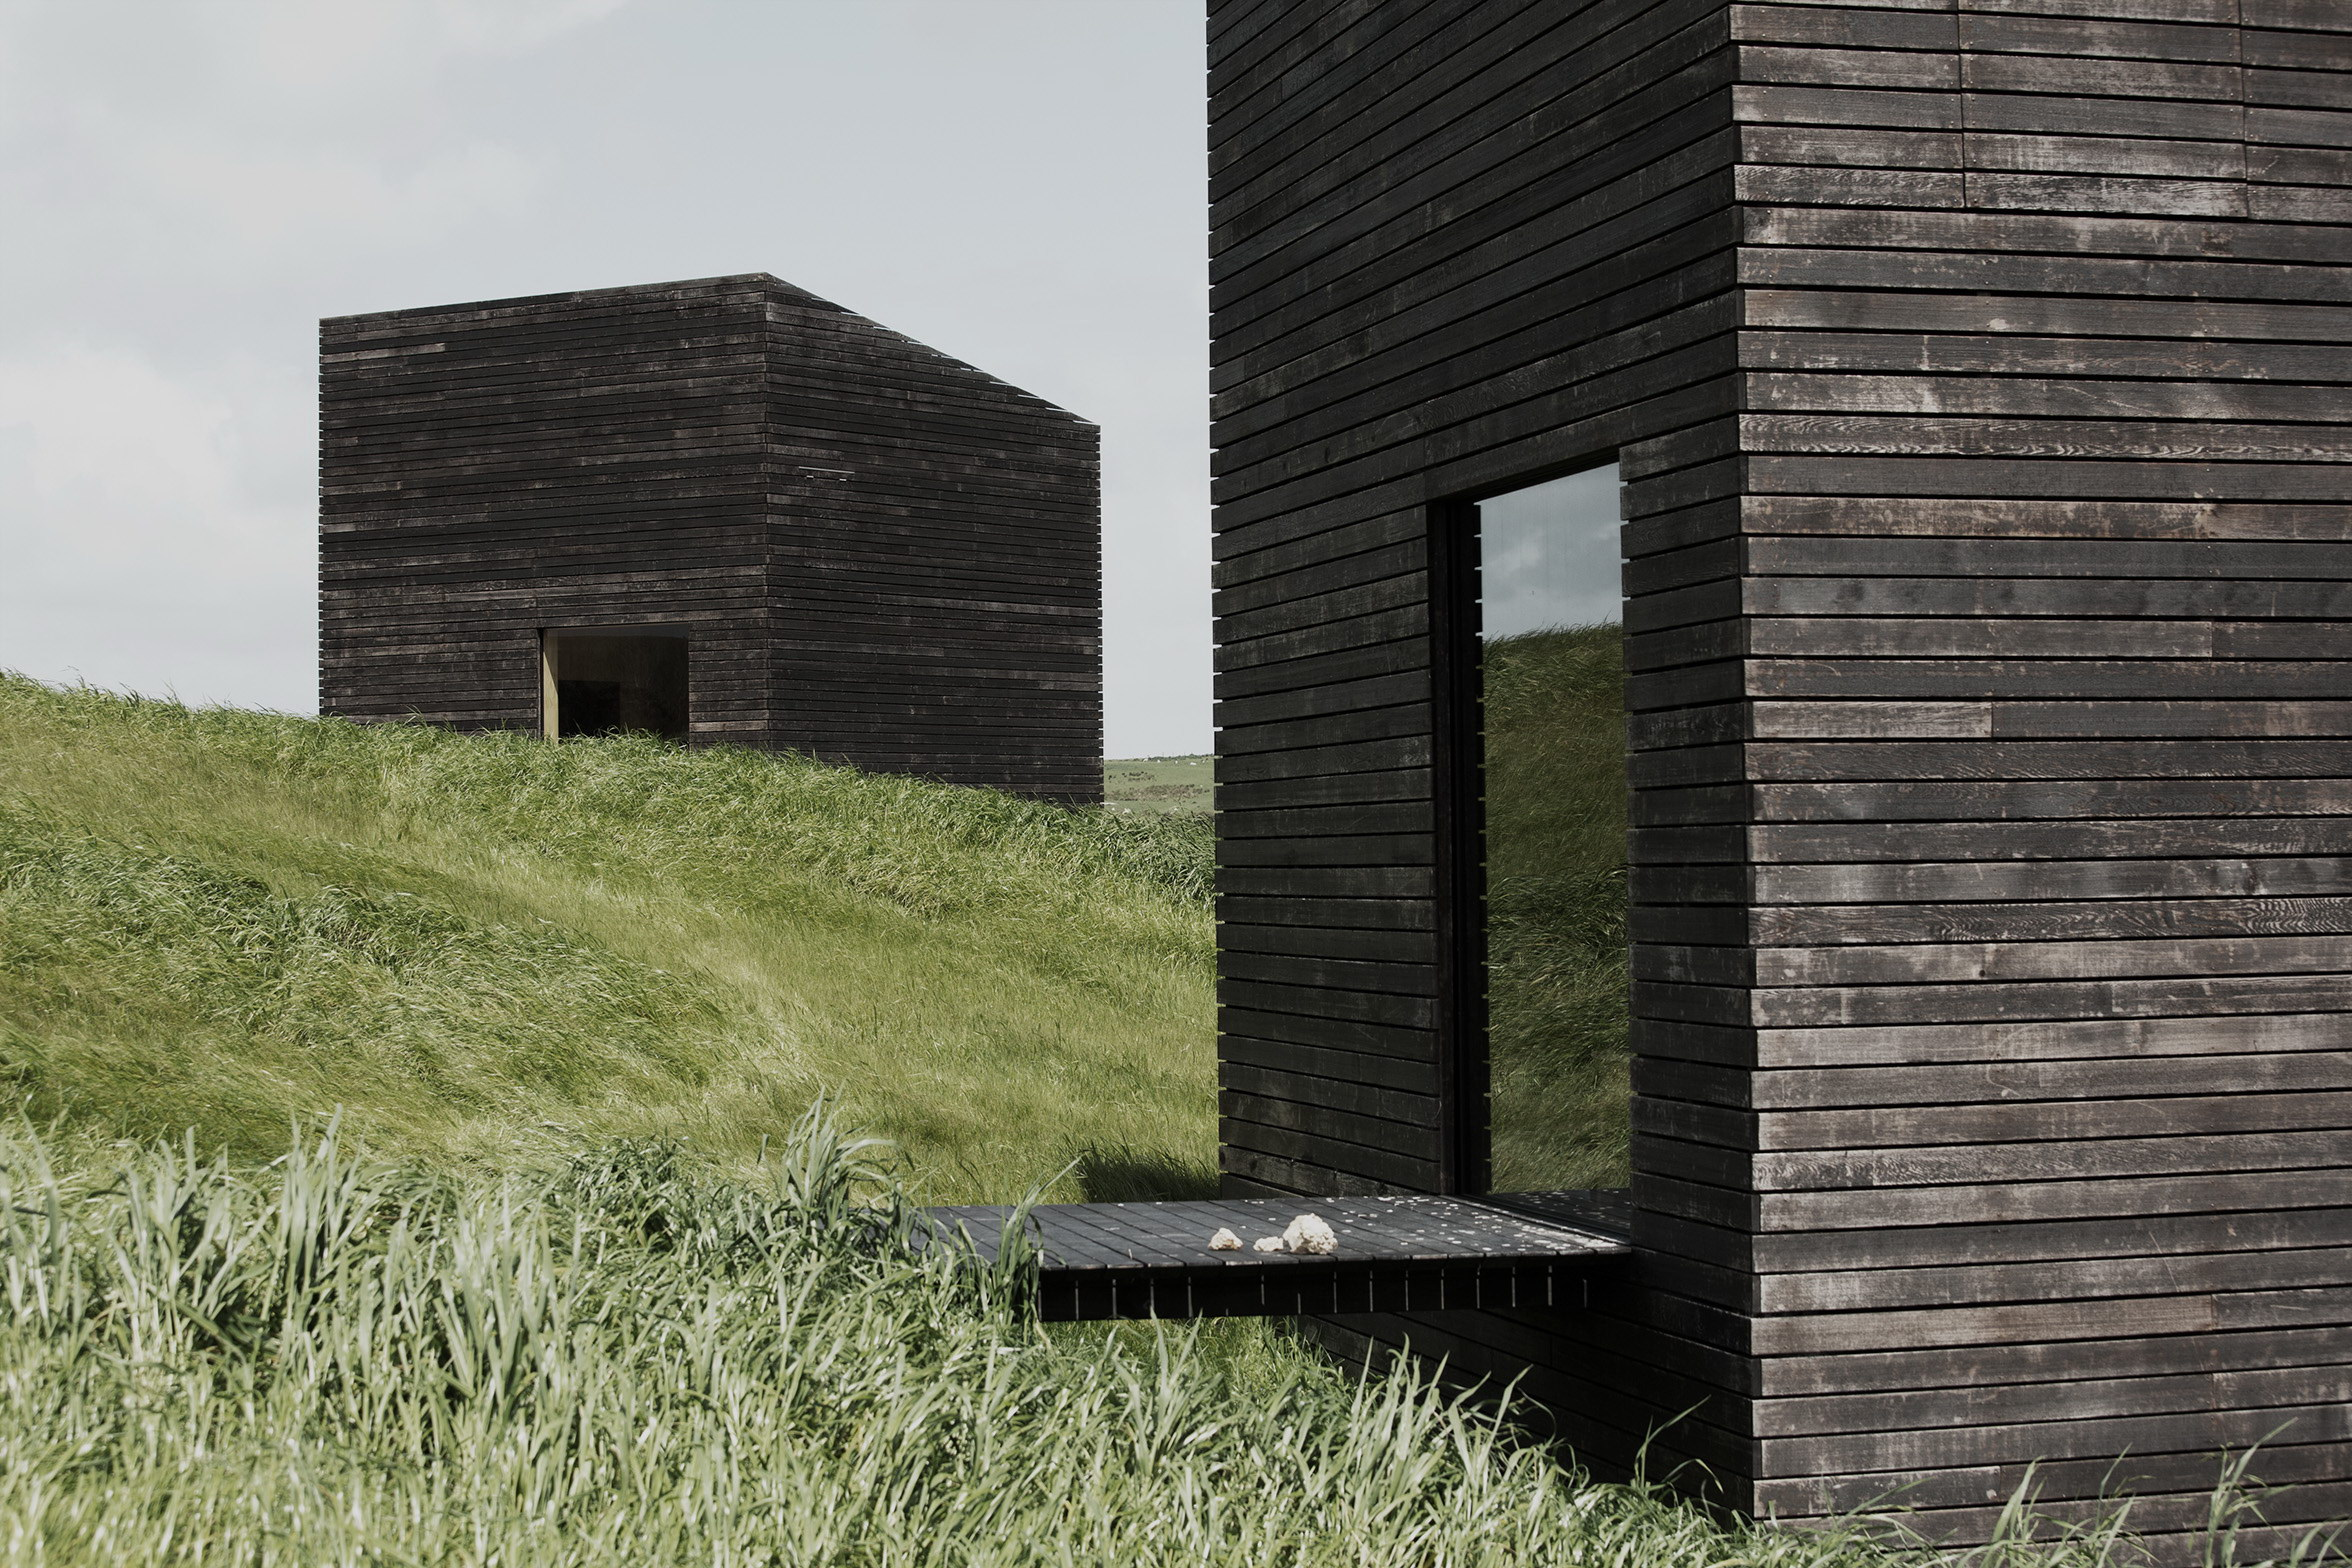 Holiday homes | Eyrie Houses